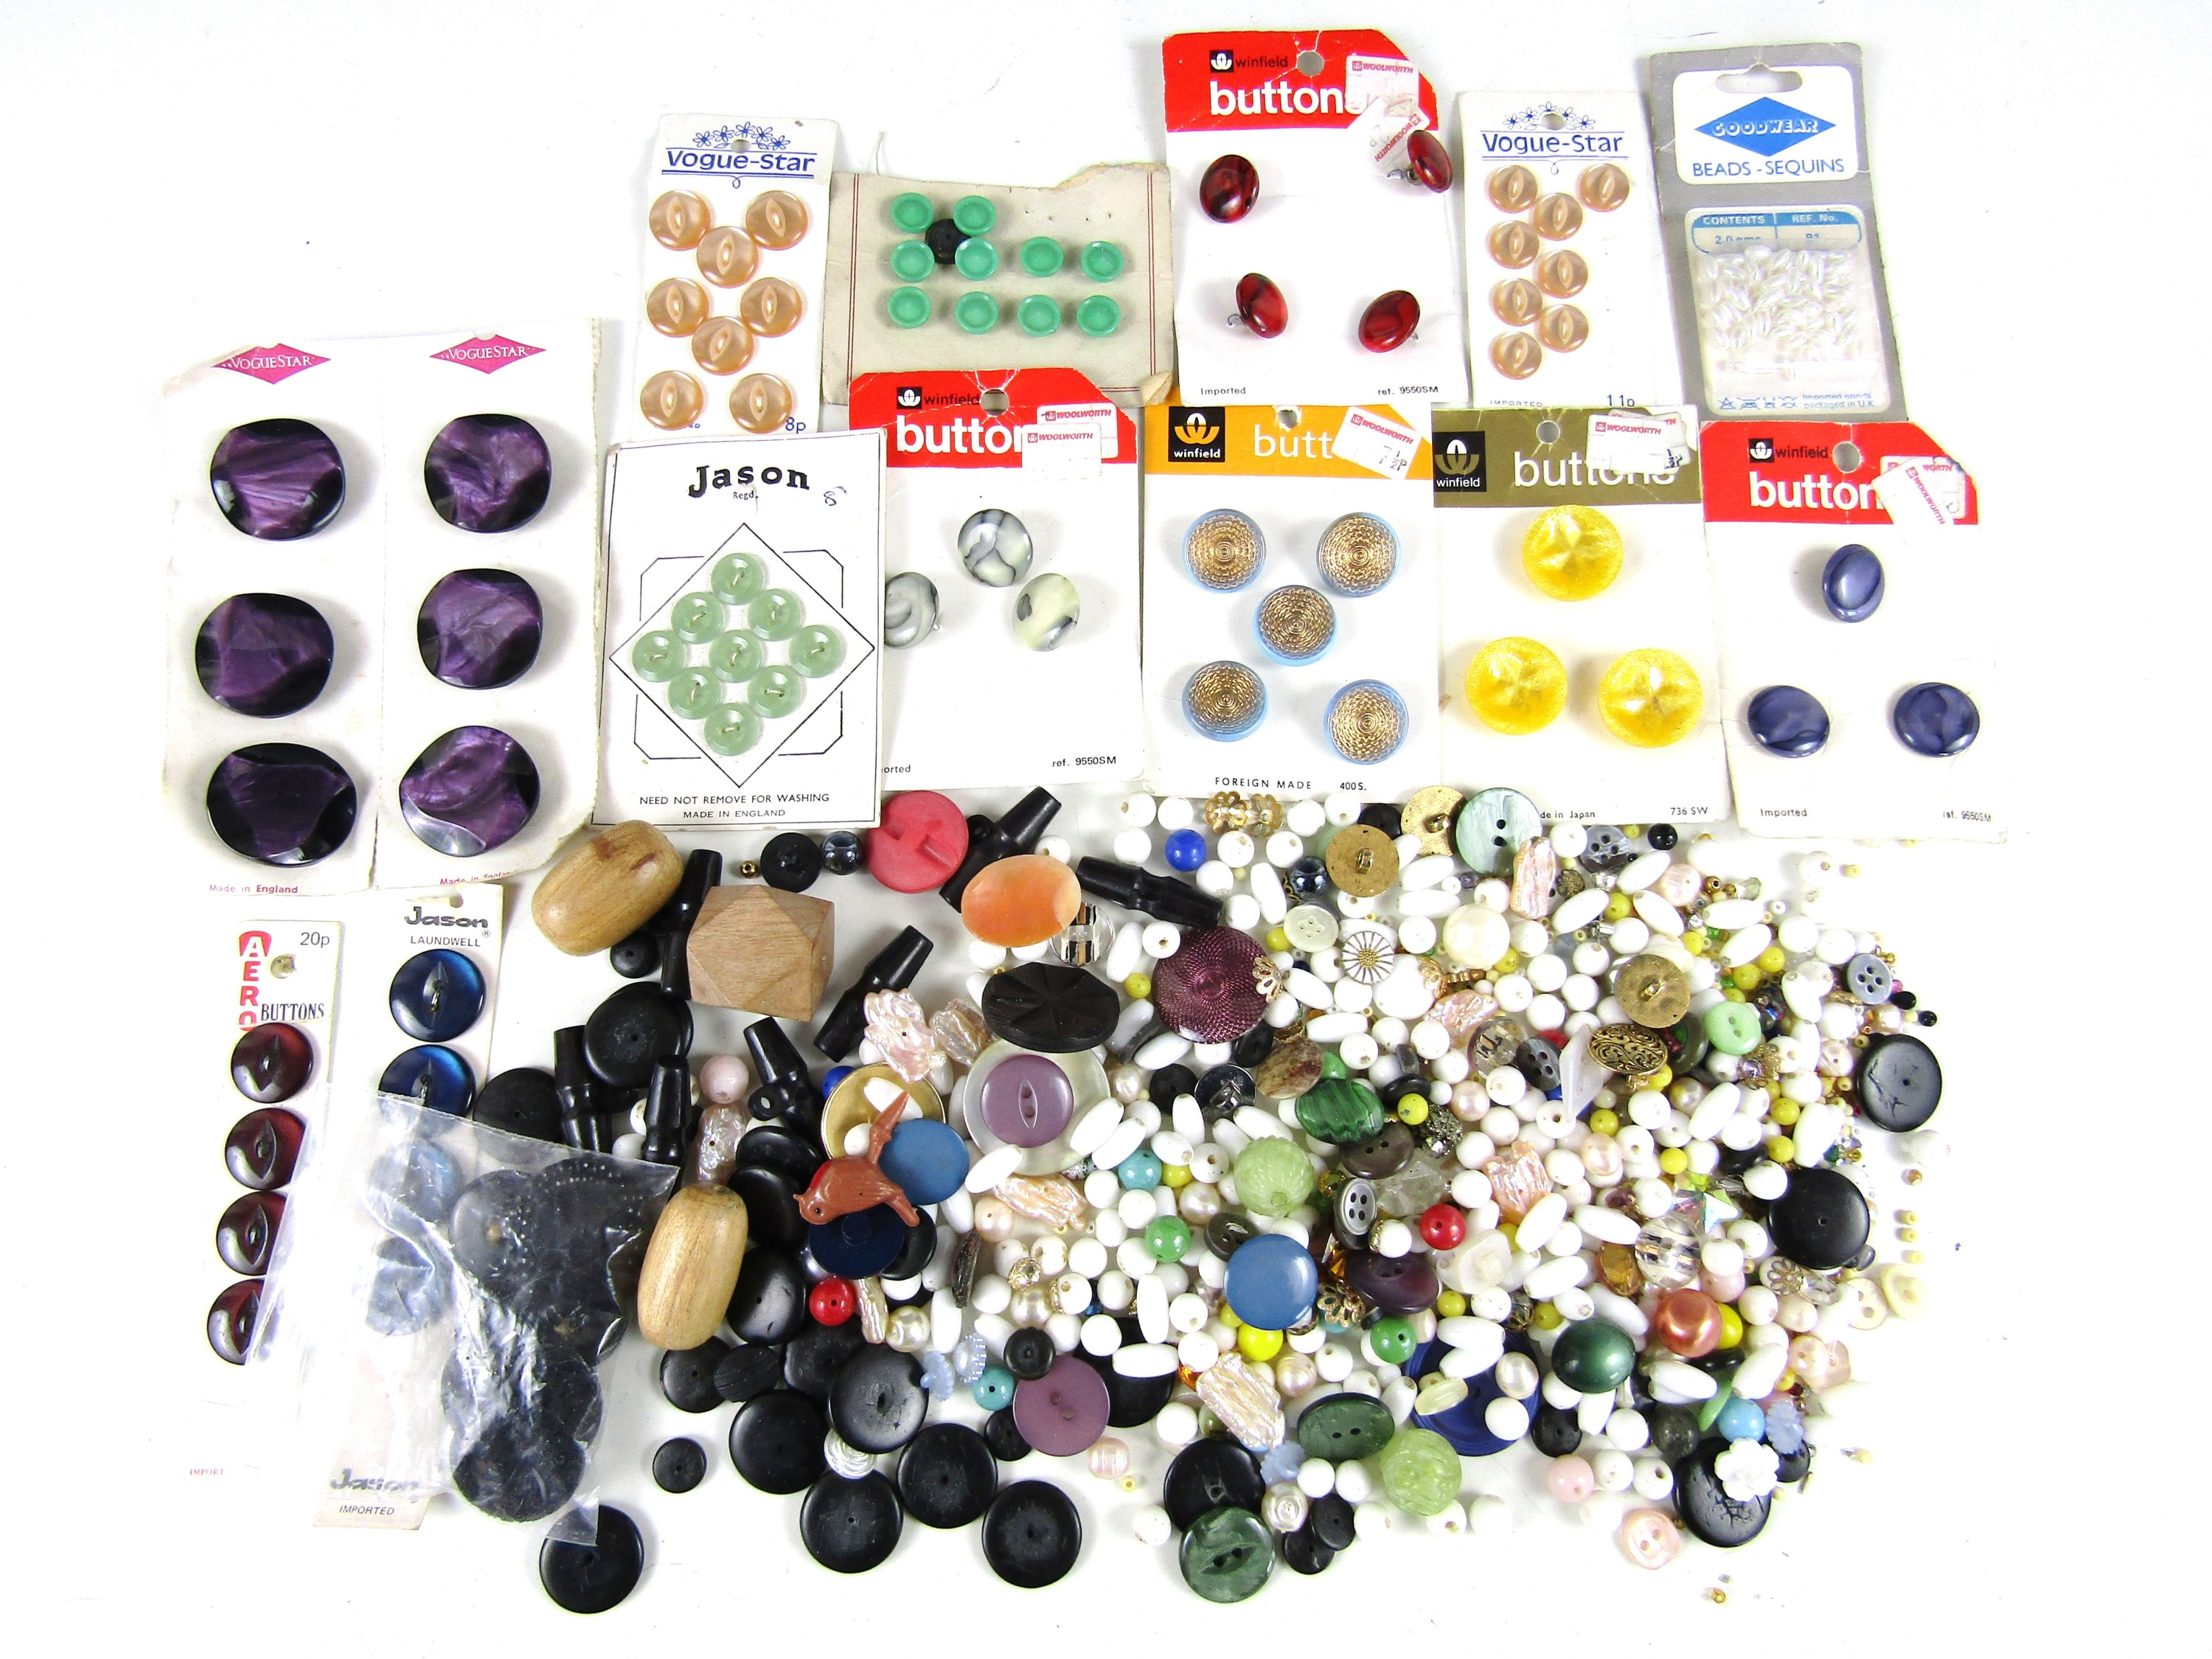 Lot 1 - A large quantity of vintage beads and buttons